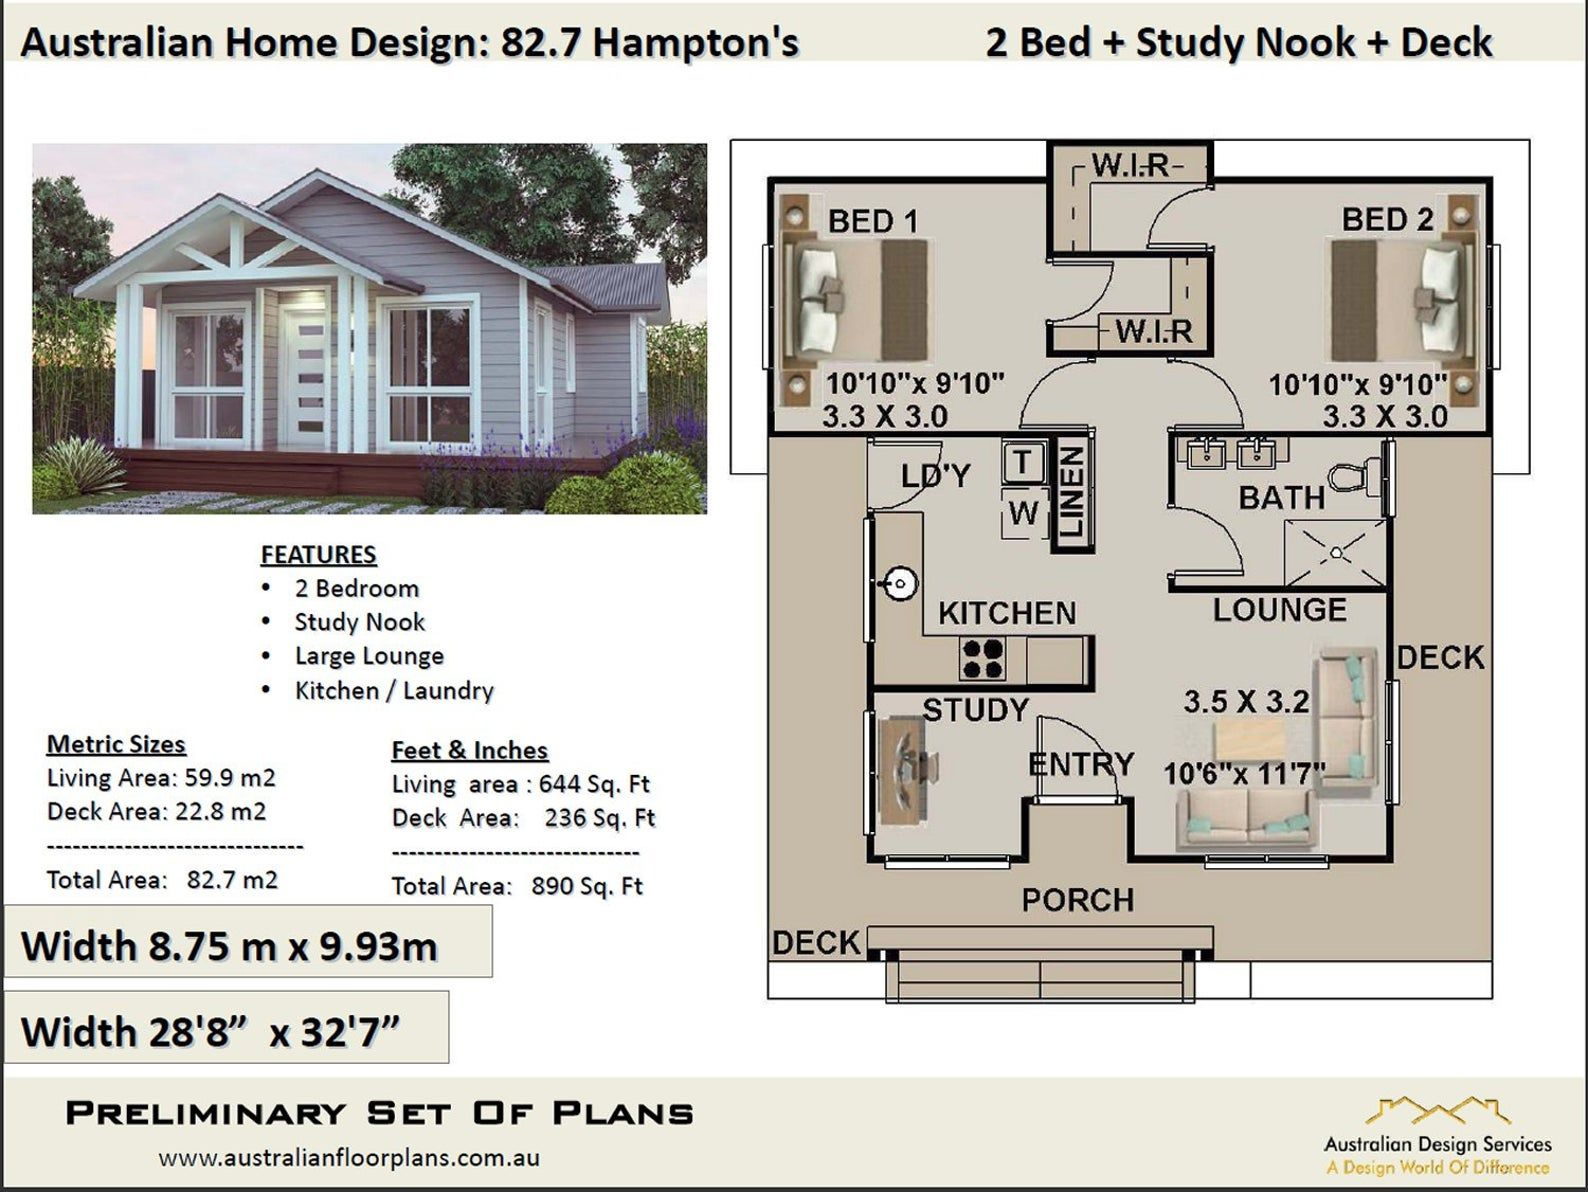 Small House Plan Australia 2 Bedroom Small Home Design Etsy House Plans Australia Small House Design Guest House Plans